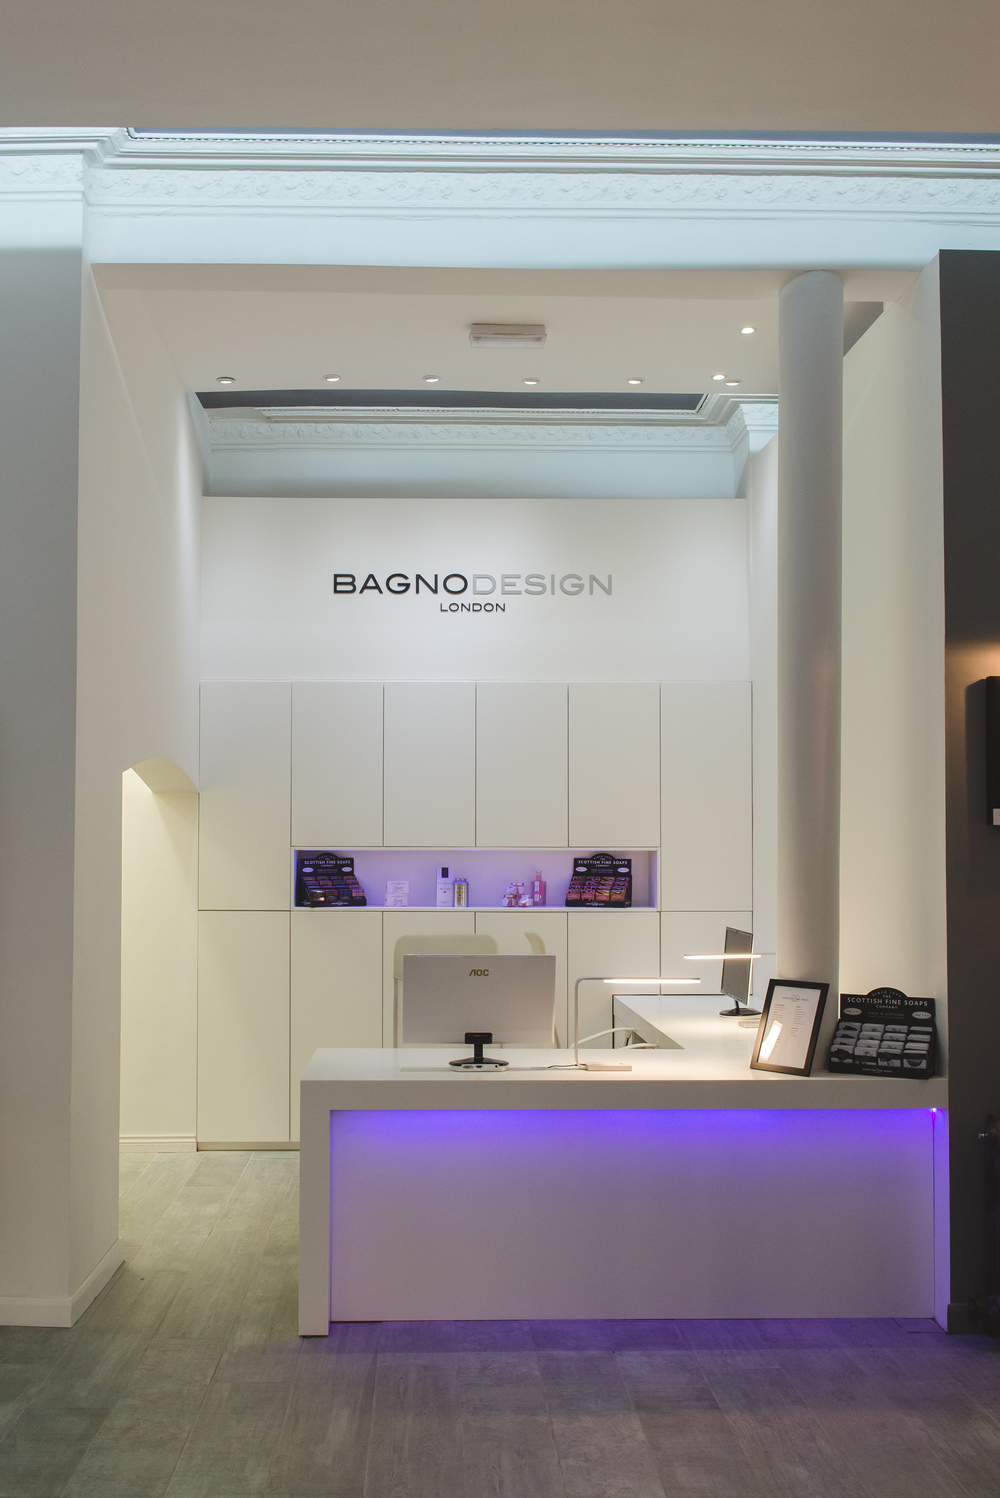 Bagno Glasgow Opening-6.jpg